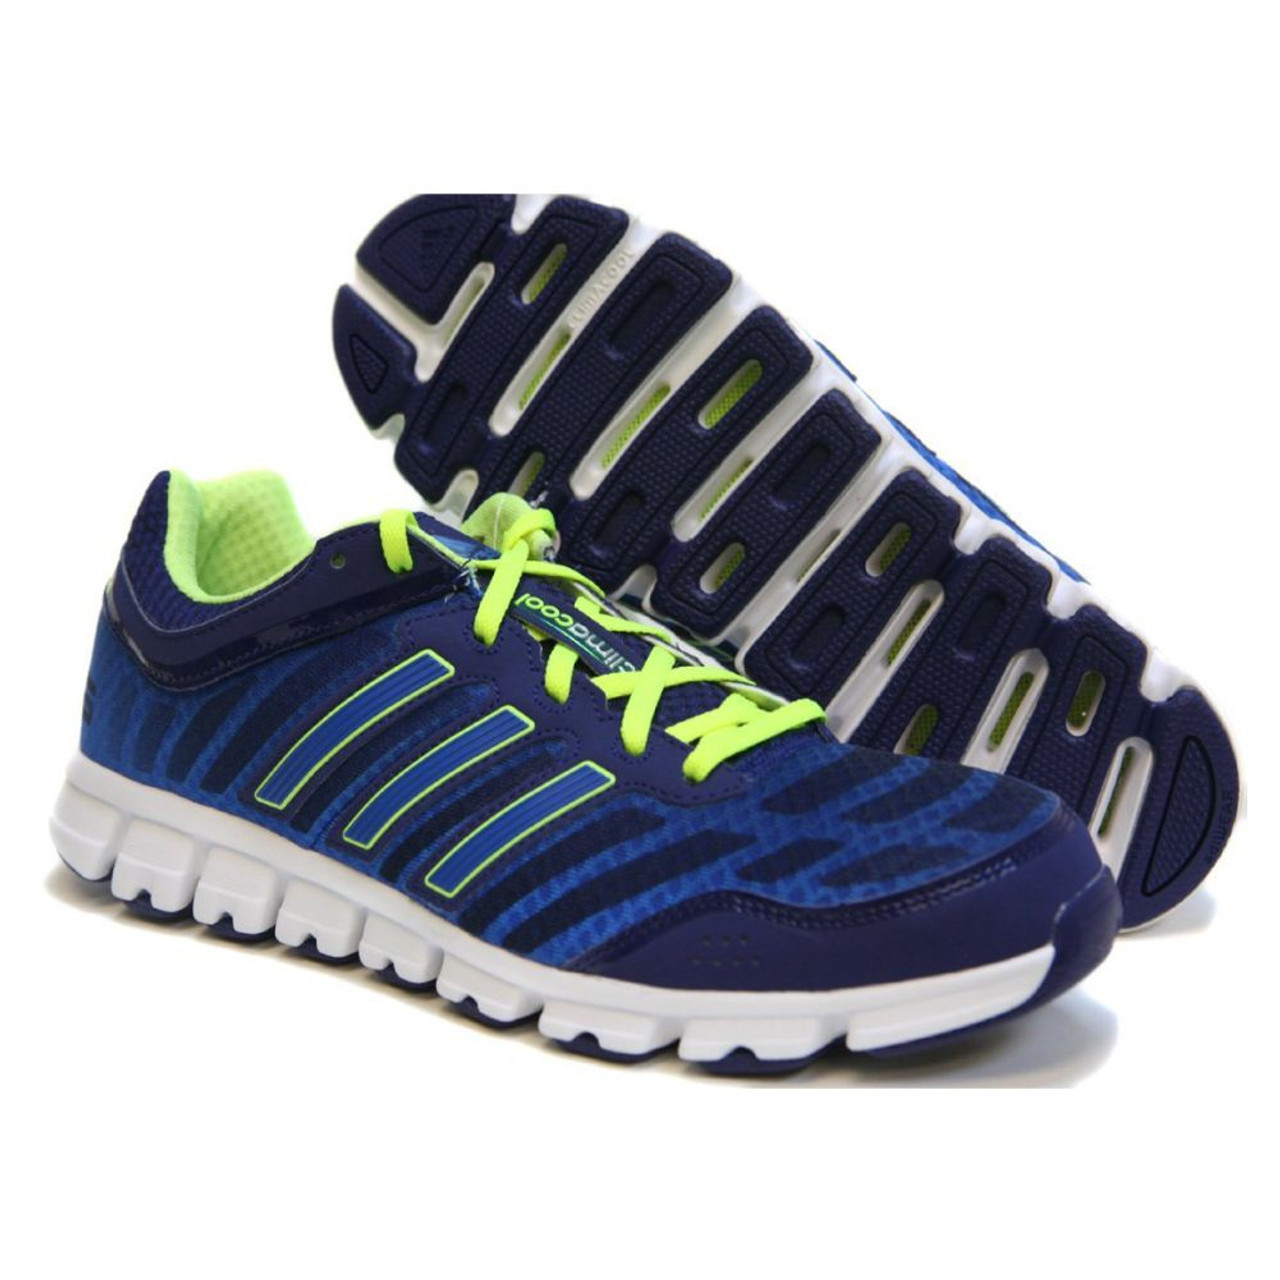 Adidas ClimaCool Aerate 2 Electricity Mens Running Shoes